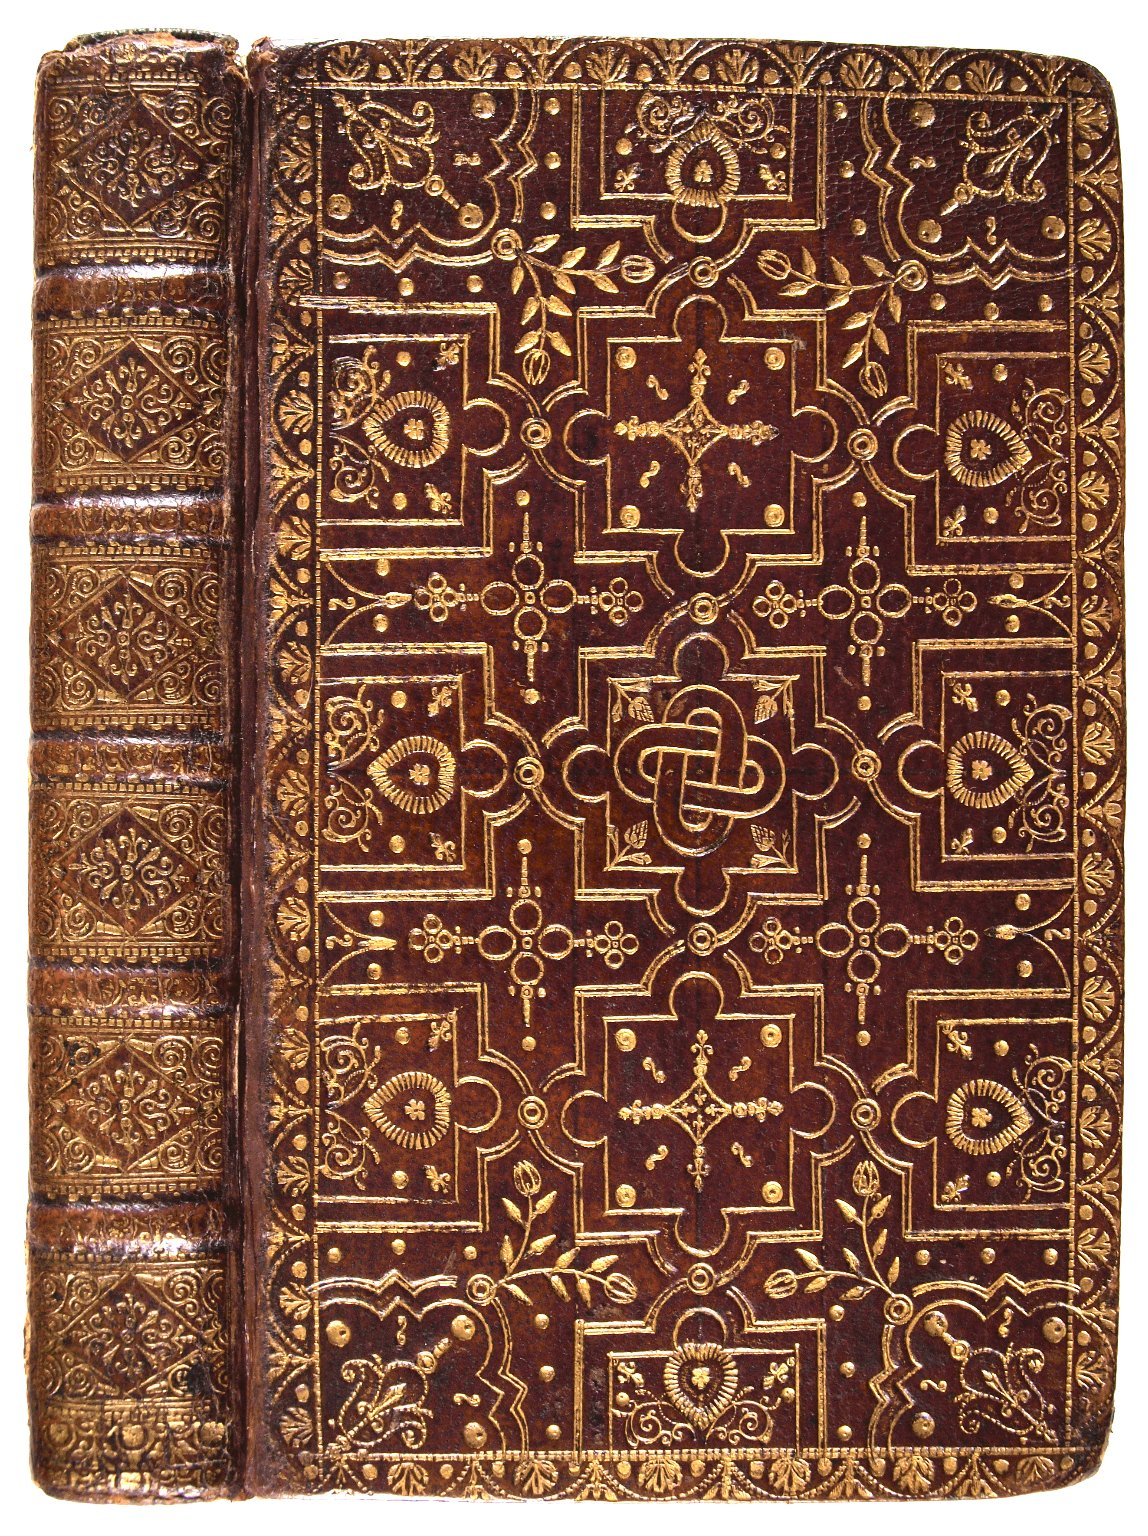 Front cover and spine, D2689.